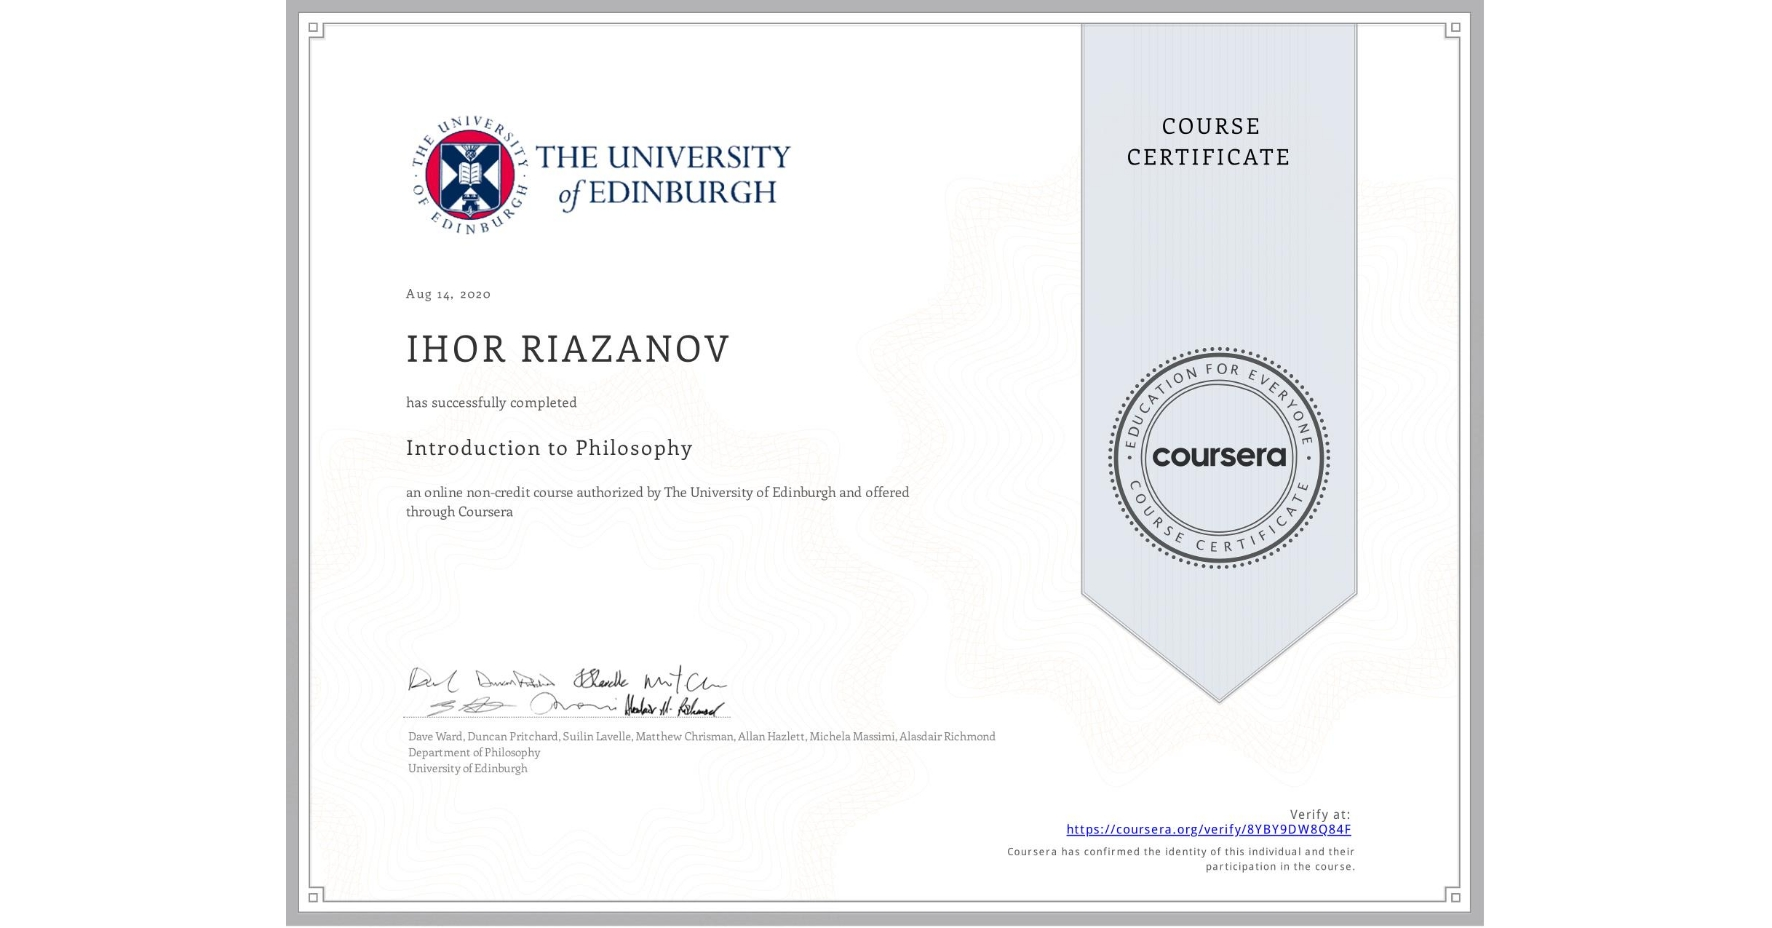 View certificate for IHOR RIAZANOV, Introduction to Philosophy, an online non-credit course authorized by The University of Edinburgh and offered through Coursera